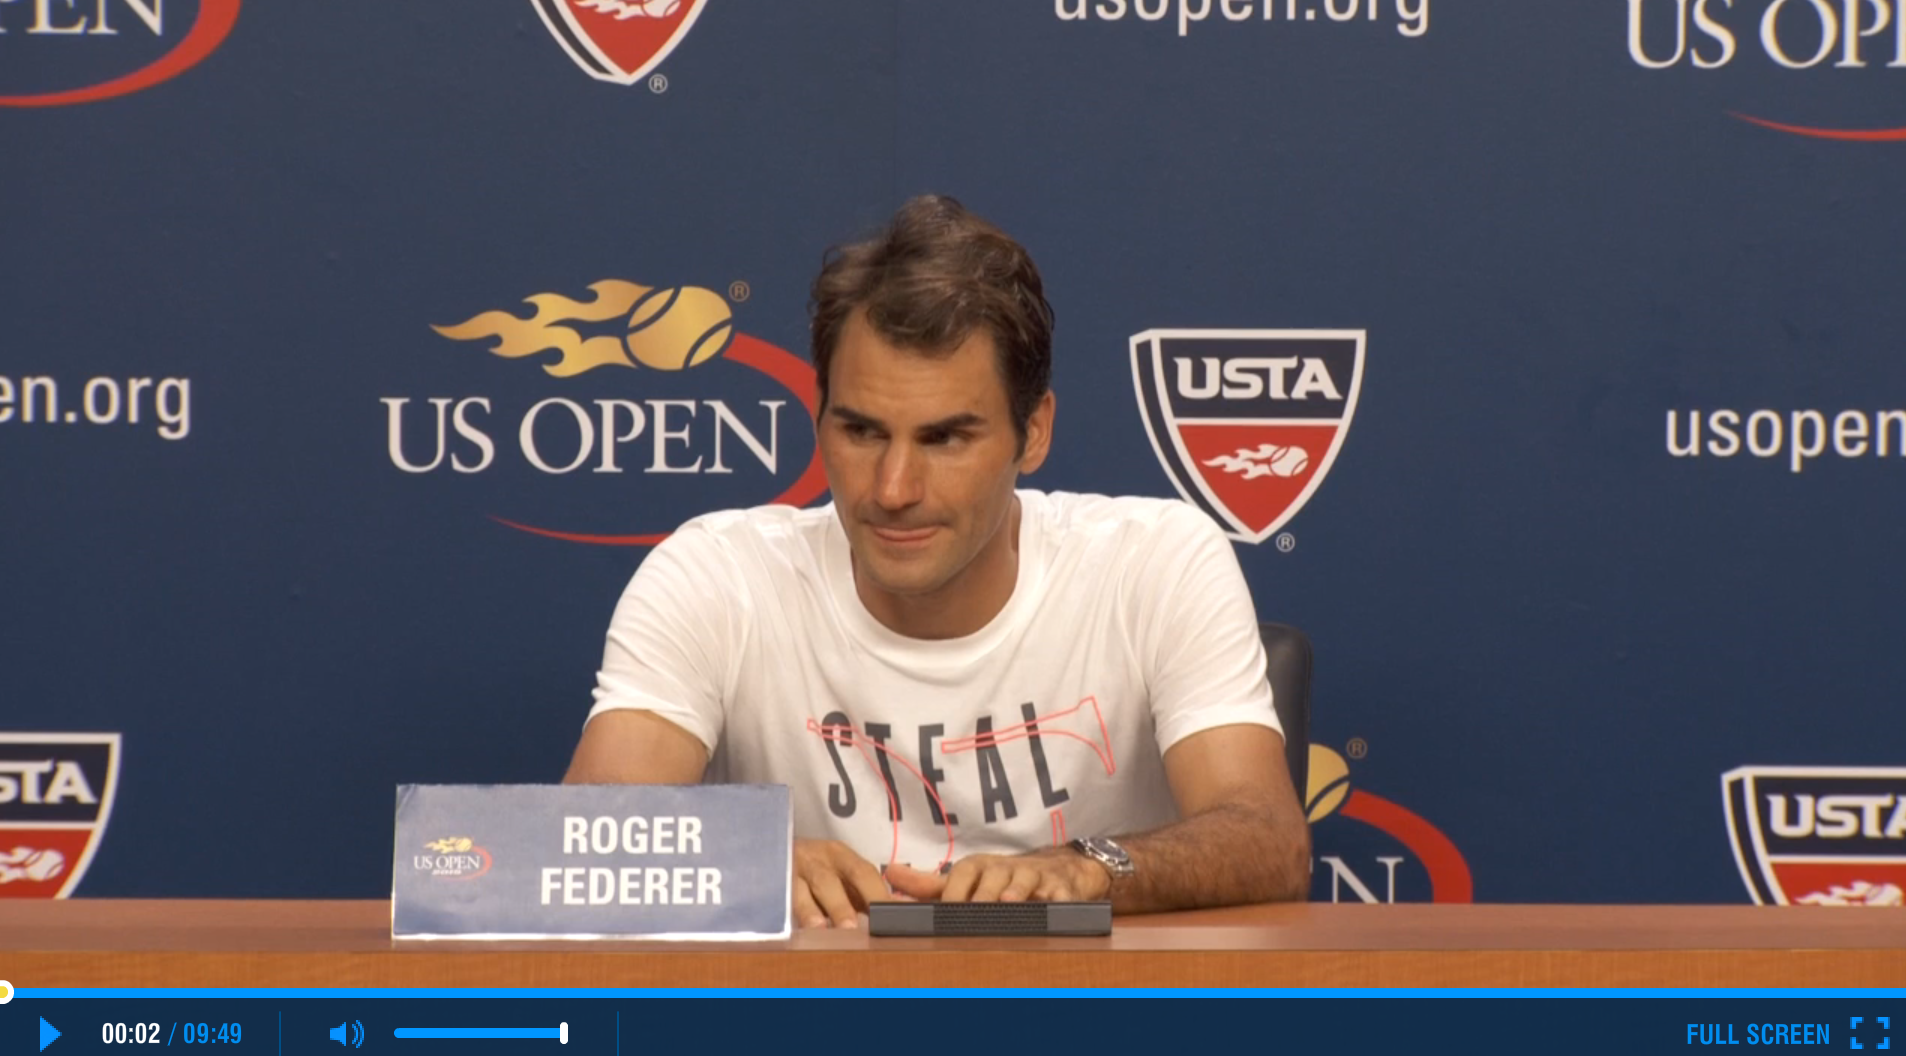 Federer US Open 2015 2nd Round Press Conference